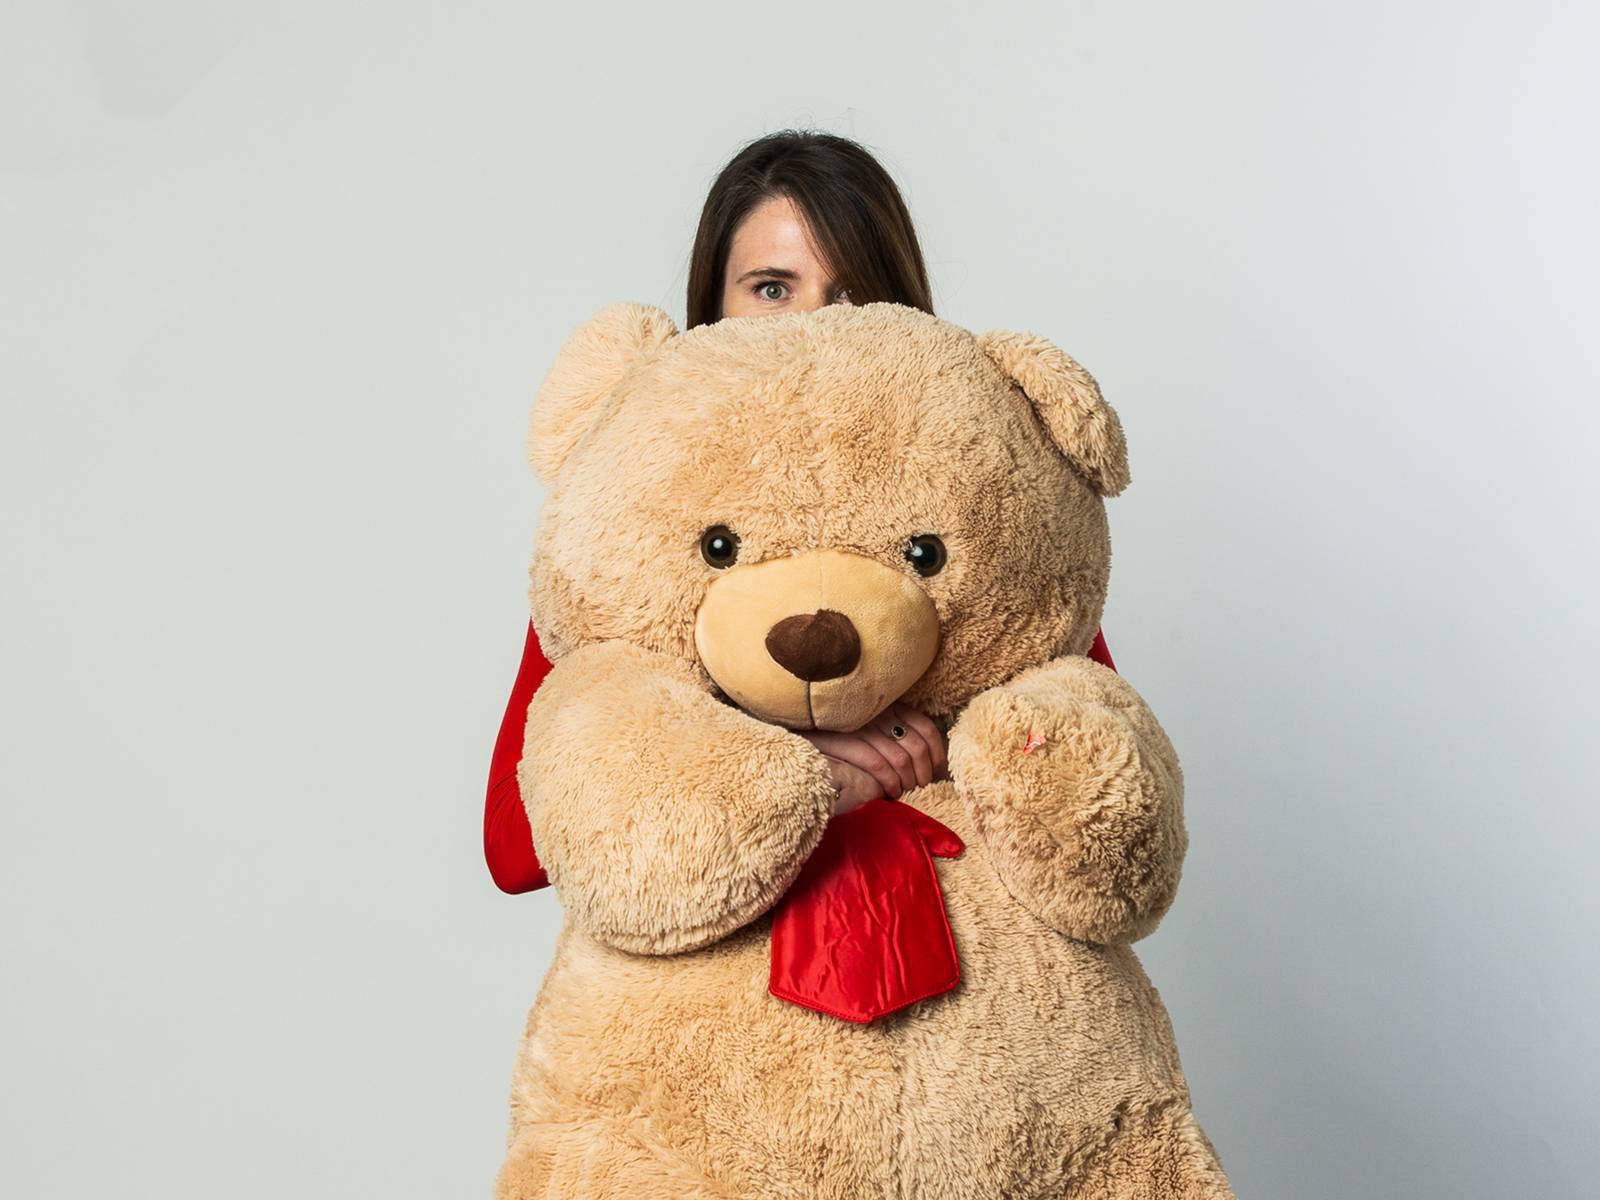 Lauren with a huge teddy